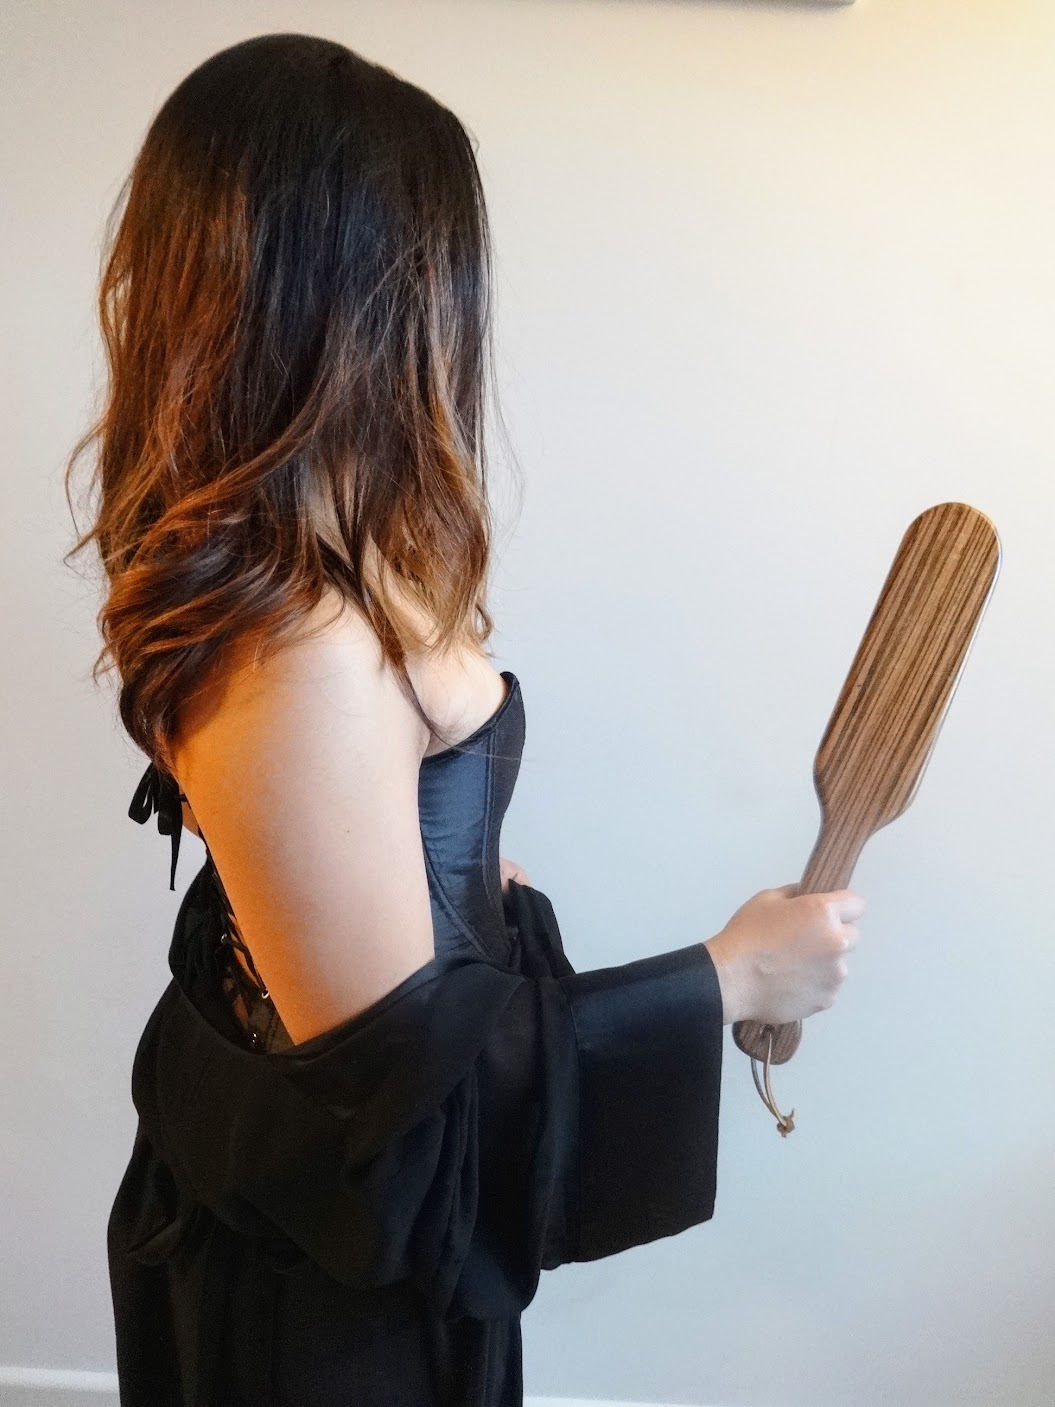 Asian domme in San Francisco with wooden paddle